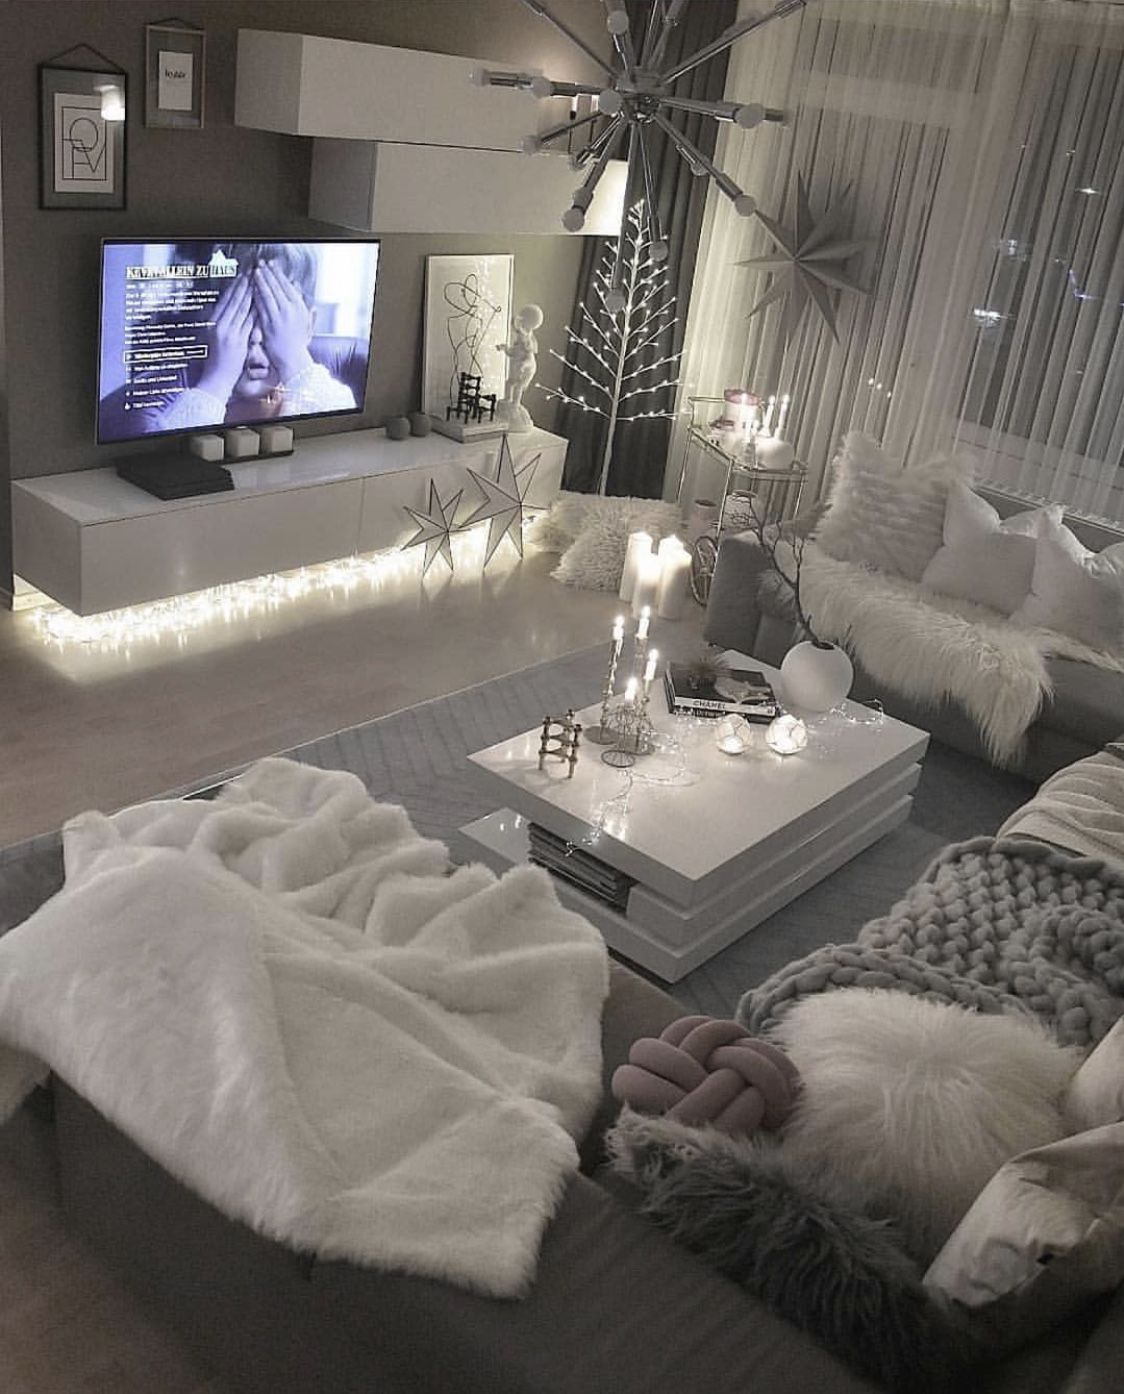 Pin by Kervanah on Hotbox in 2019 | First apartment ...